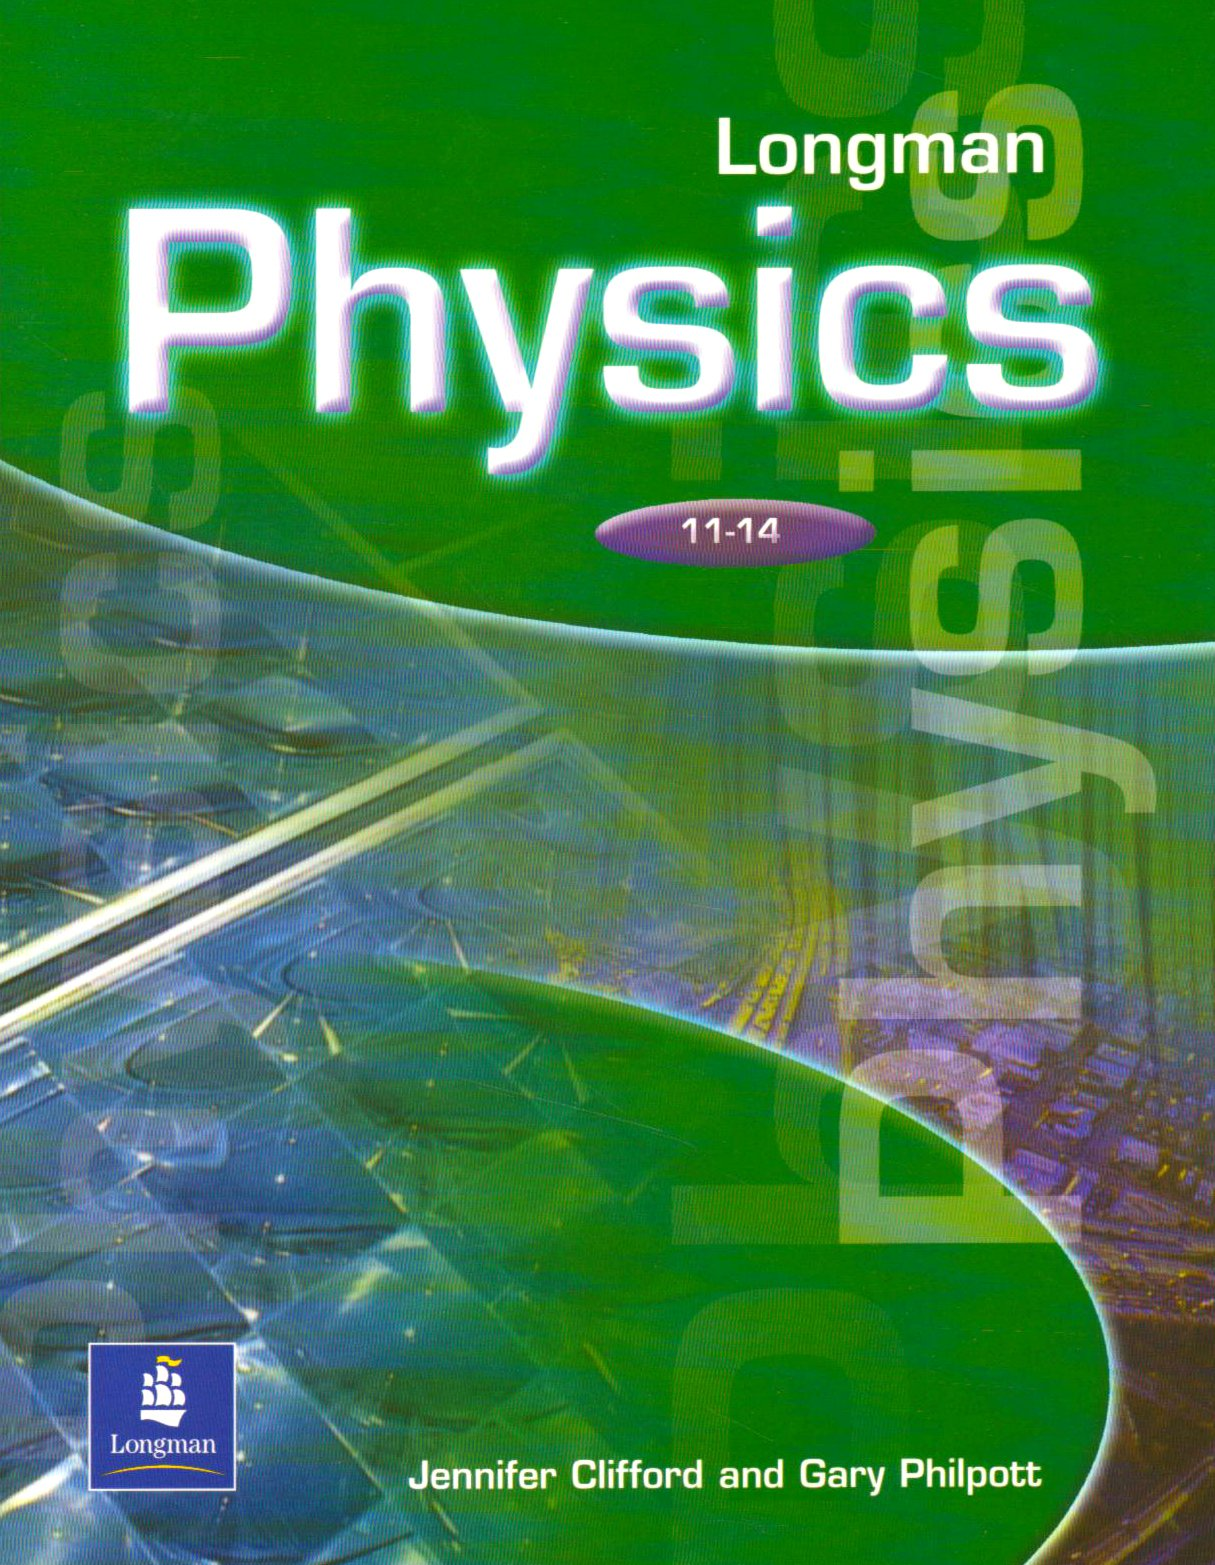 Buy longman physics 11 14 paper longman science 11 to 14 book buy longman physics 11 14 paper longman science 11 to 14 book online at low prices in india longman physics 11 14 paper longman science 11 to 14 fandeluxe Gallery